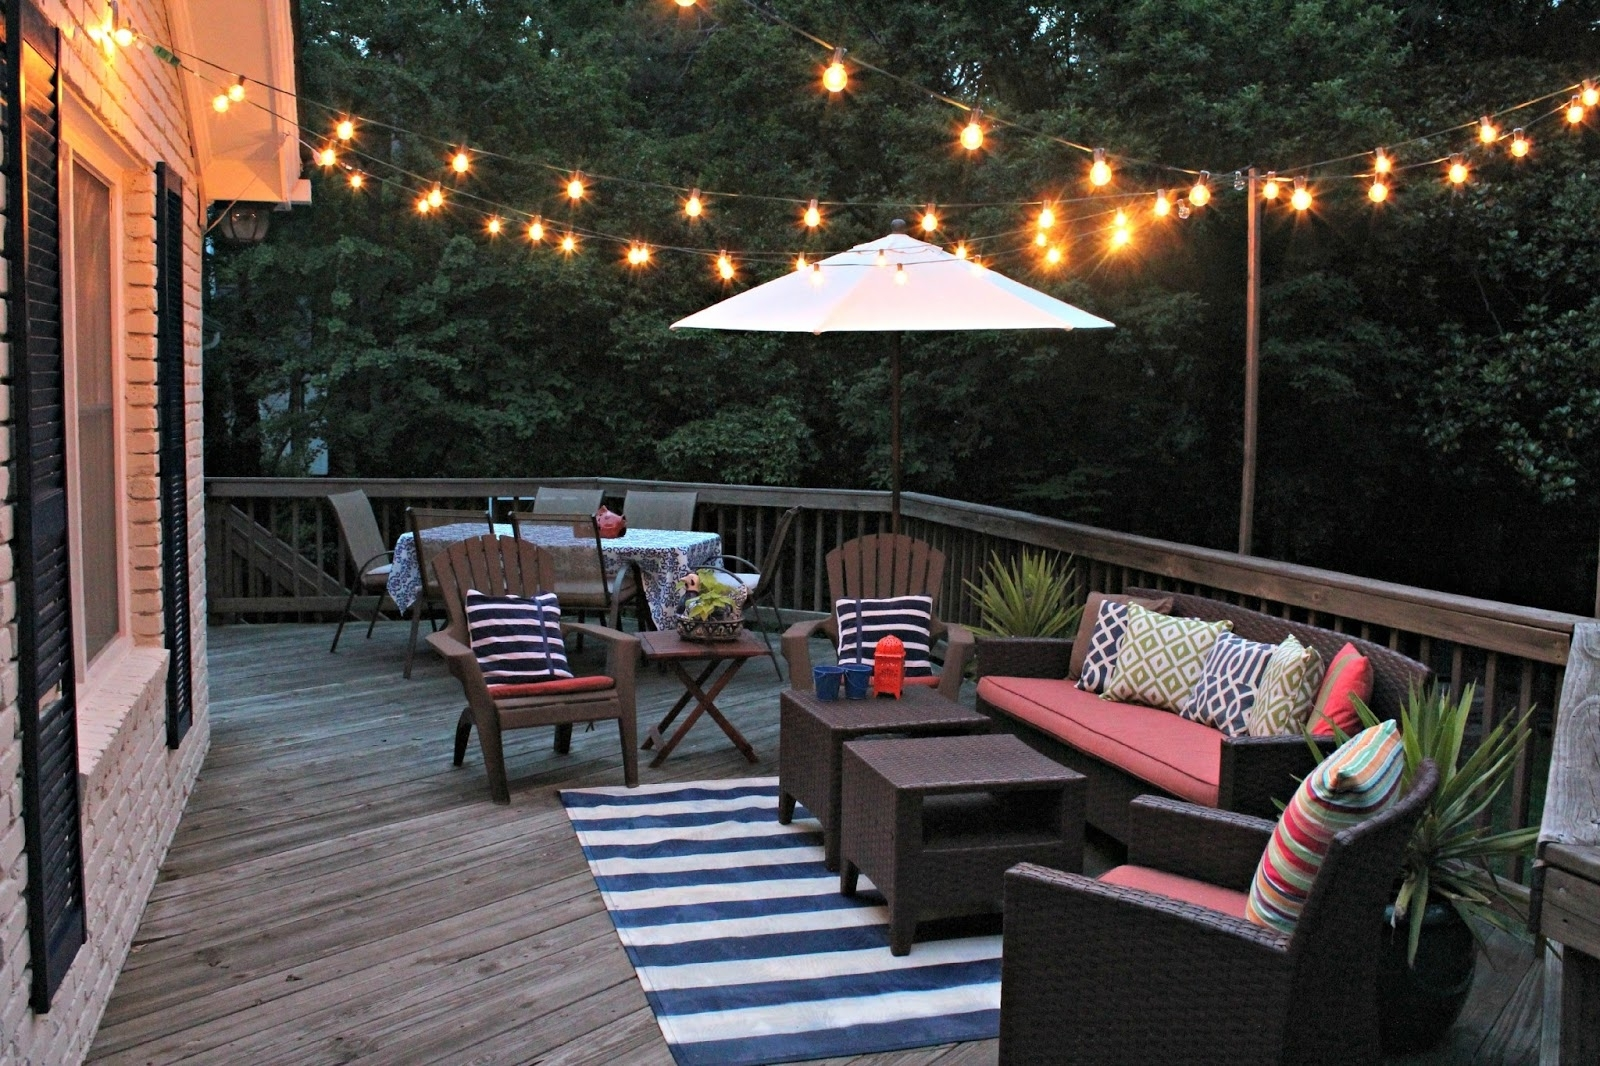 Fashionable Outdoor Hanging Deck Lights Pertaining To Outdoor Deck String Lighting Collection Including Ideas Led Lights (View 12 of 20)